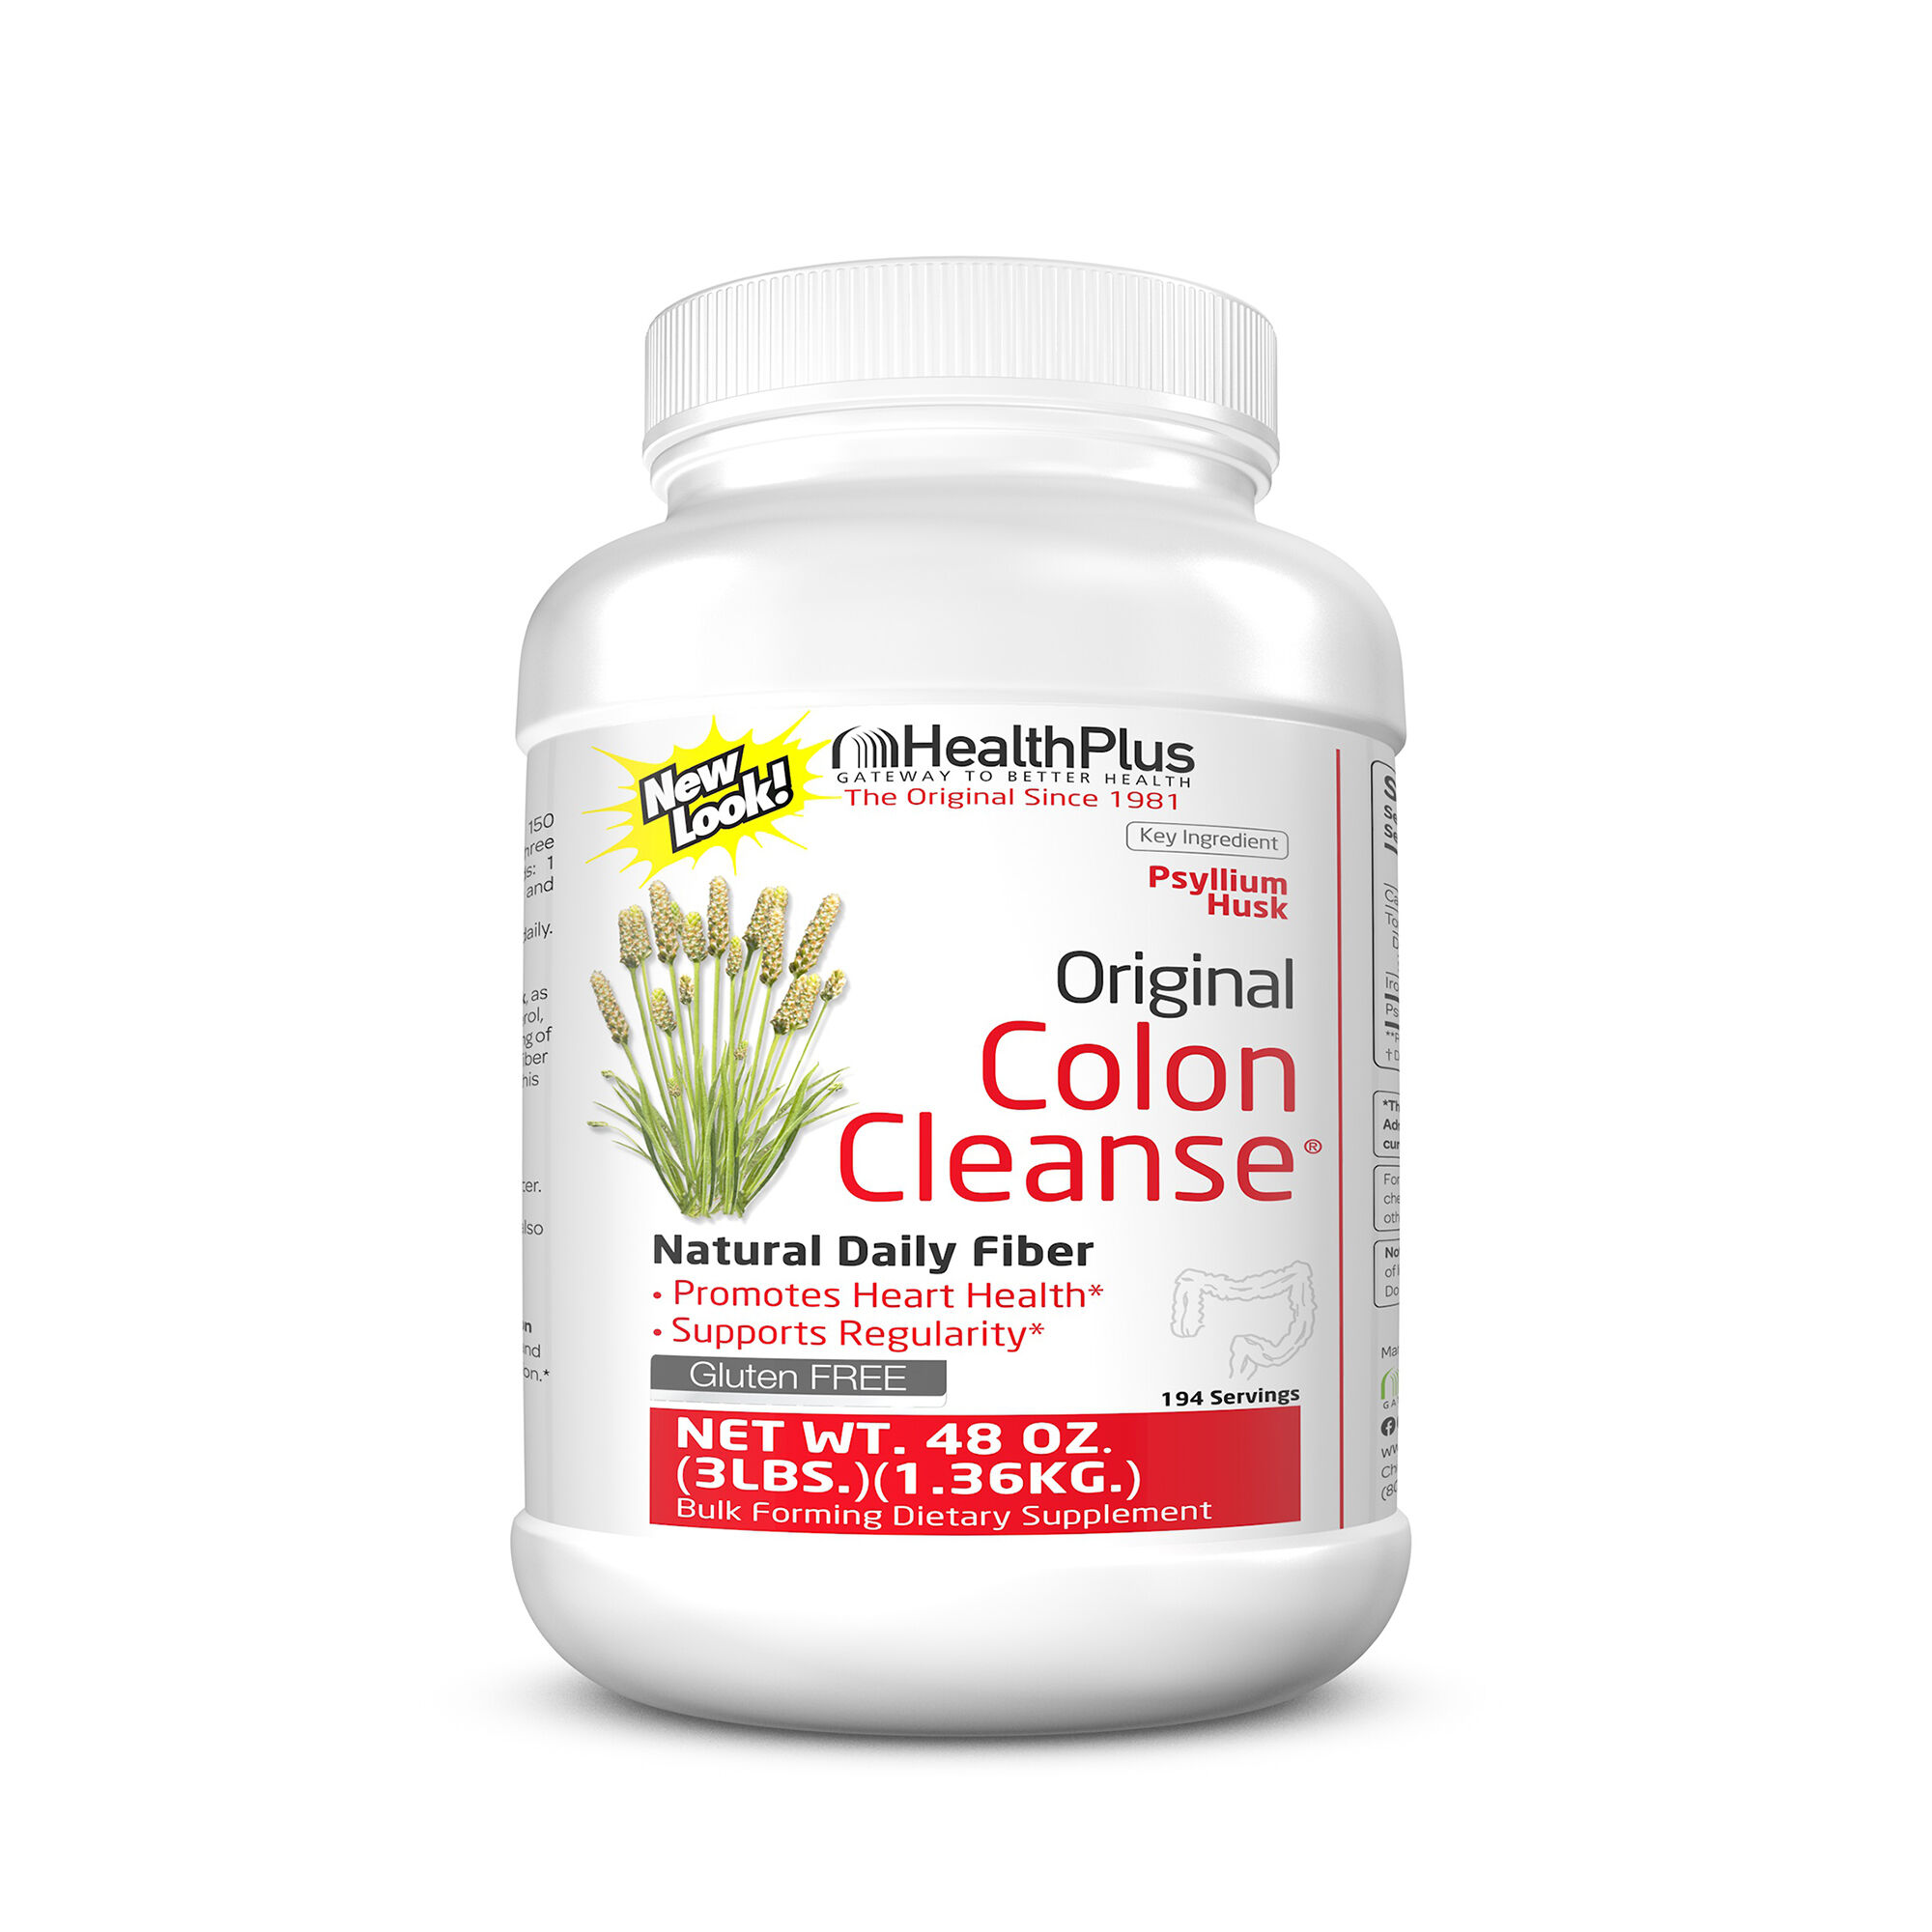 Cleansing Detox Supplements Detox Tea Drinks more GNC